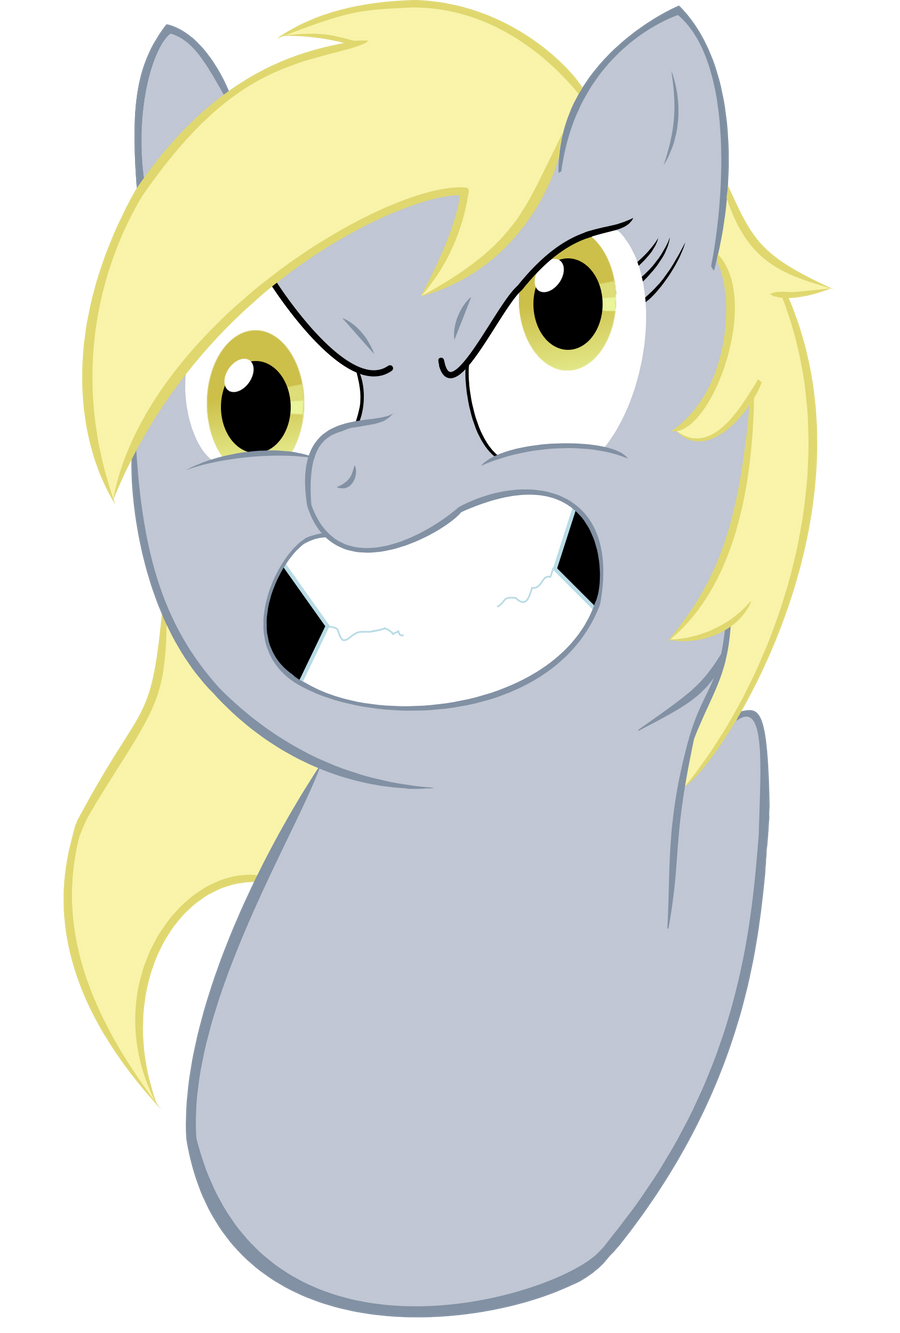 Derpy worm by Juicy-Apple